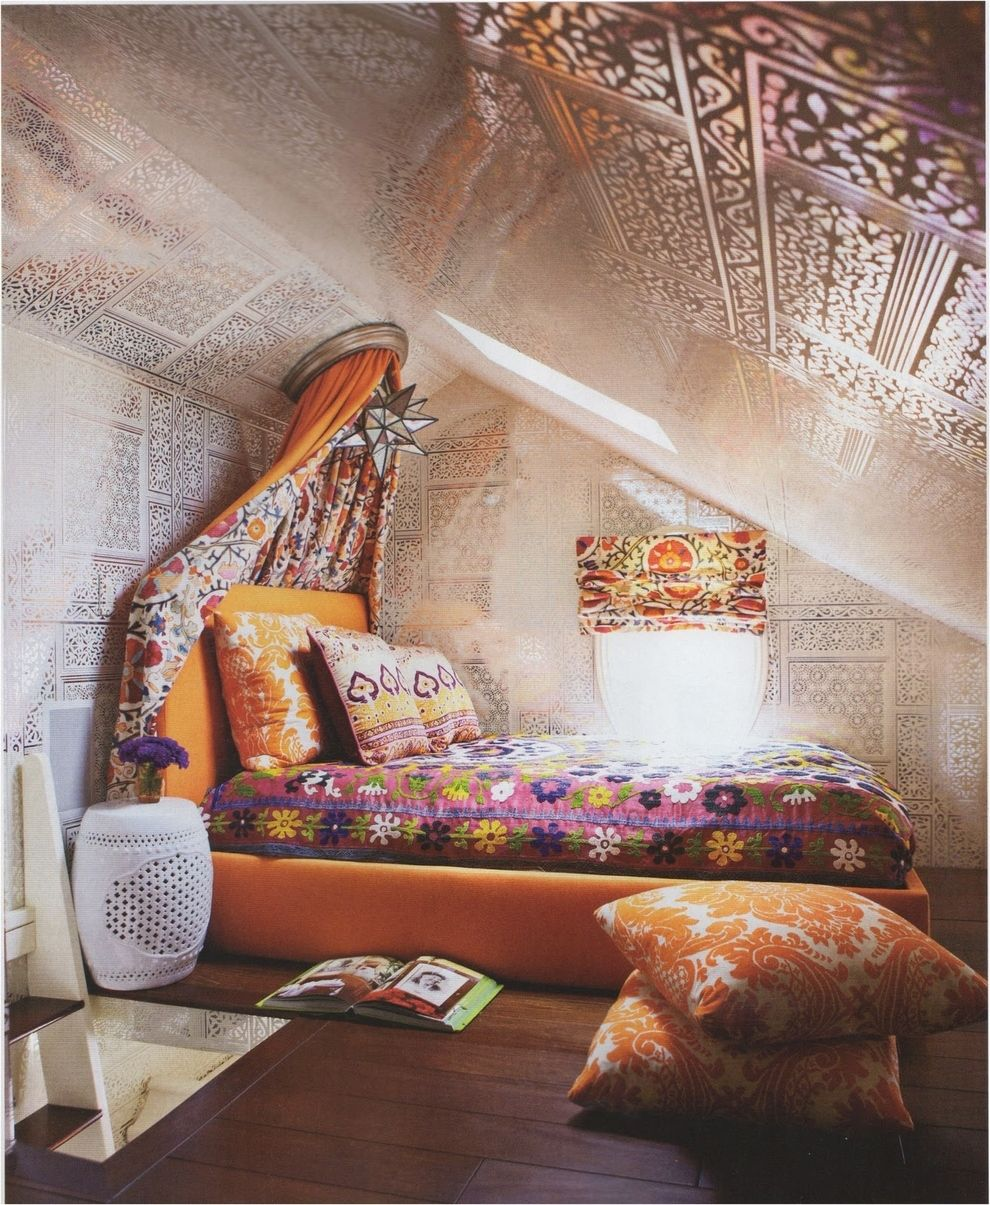 bedroom #bohemian #decor | For my humble abode | Pinterest ...